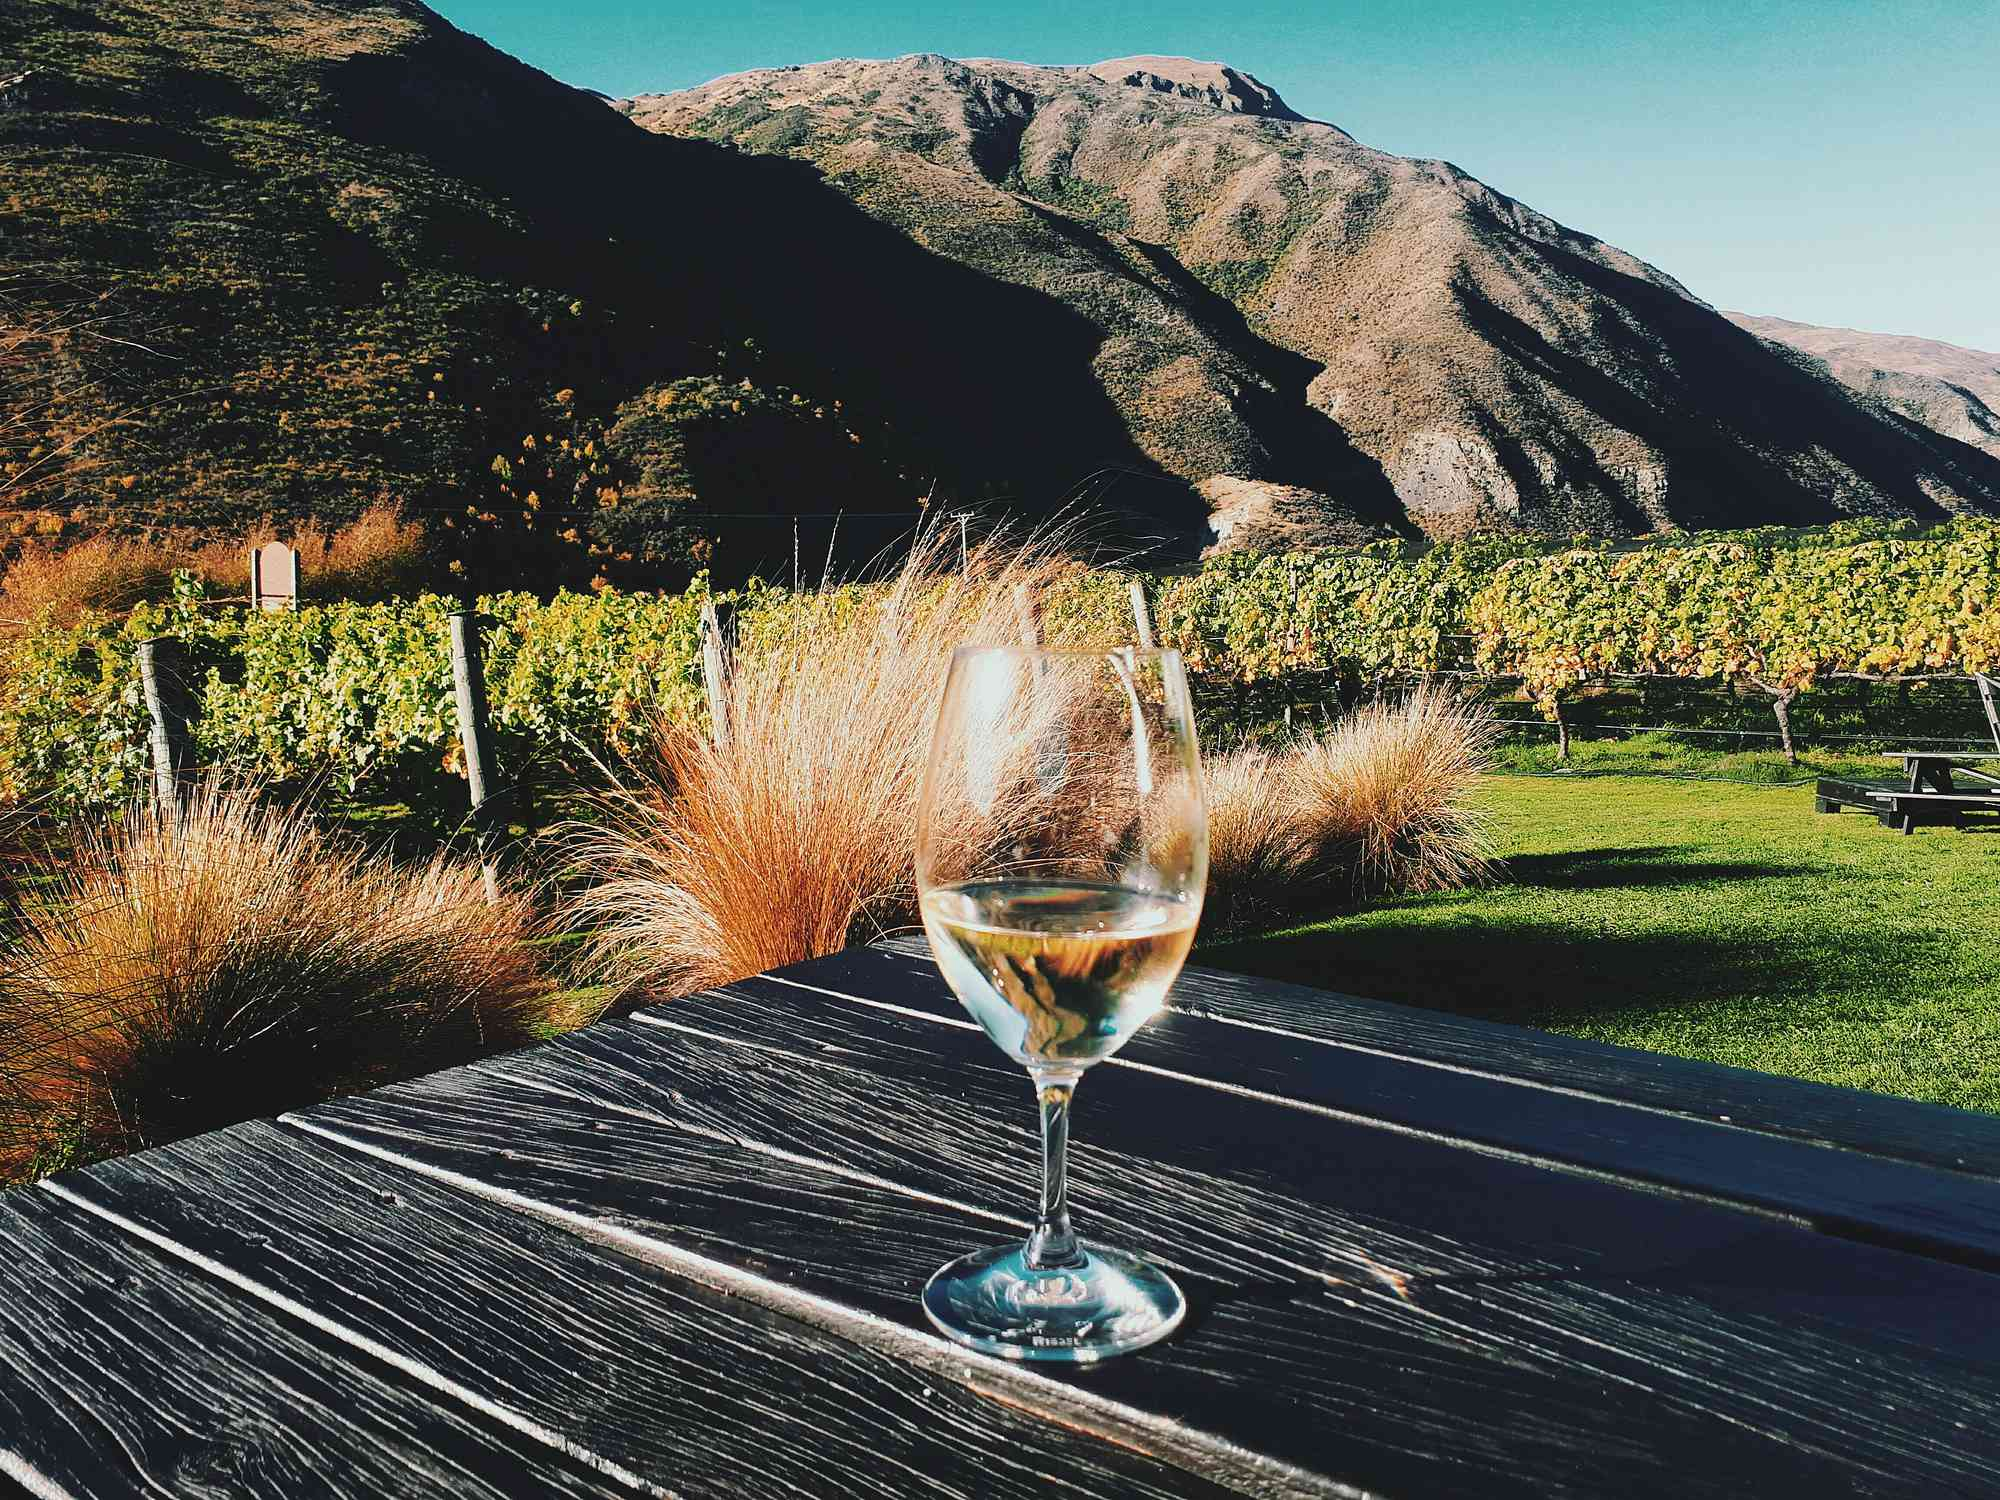 glass of white wine on a table outdoors with grass, vines and mountains behind